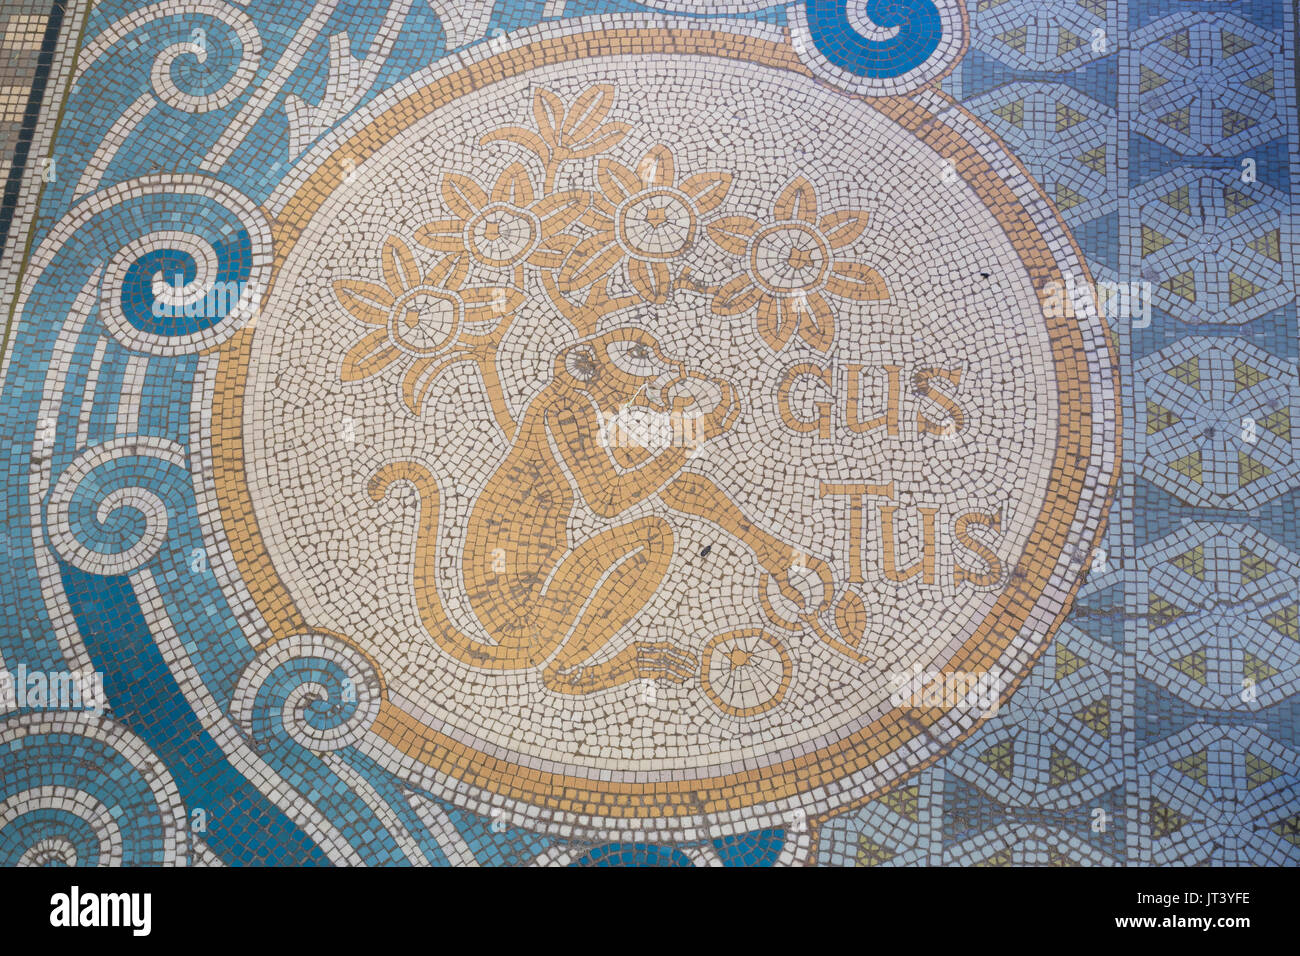 France, Loiret, Briare, Saint-Etienne Church, mosaic floor made with Briare enamel designed by Eugène Grasset representing the 5 senses, here the tast - Stock Image